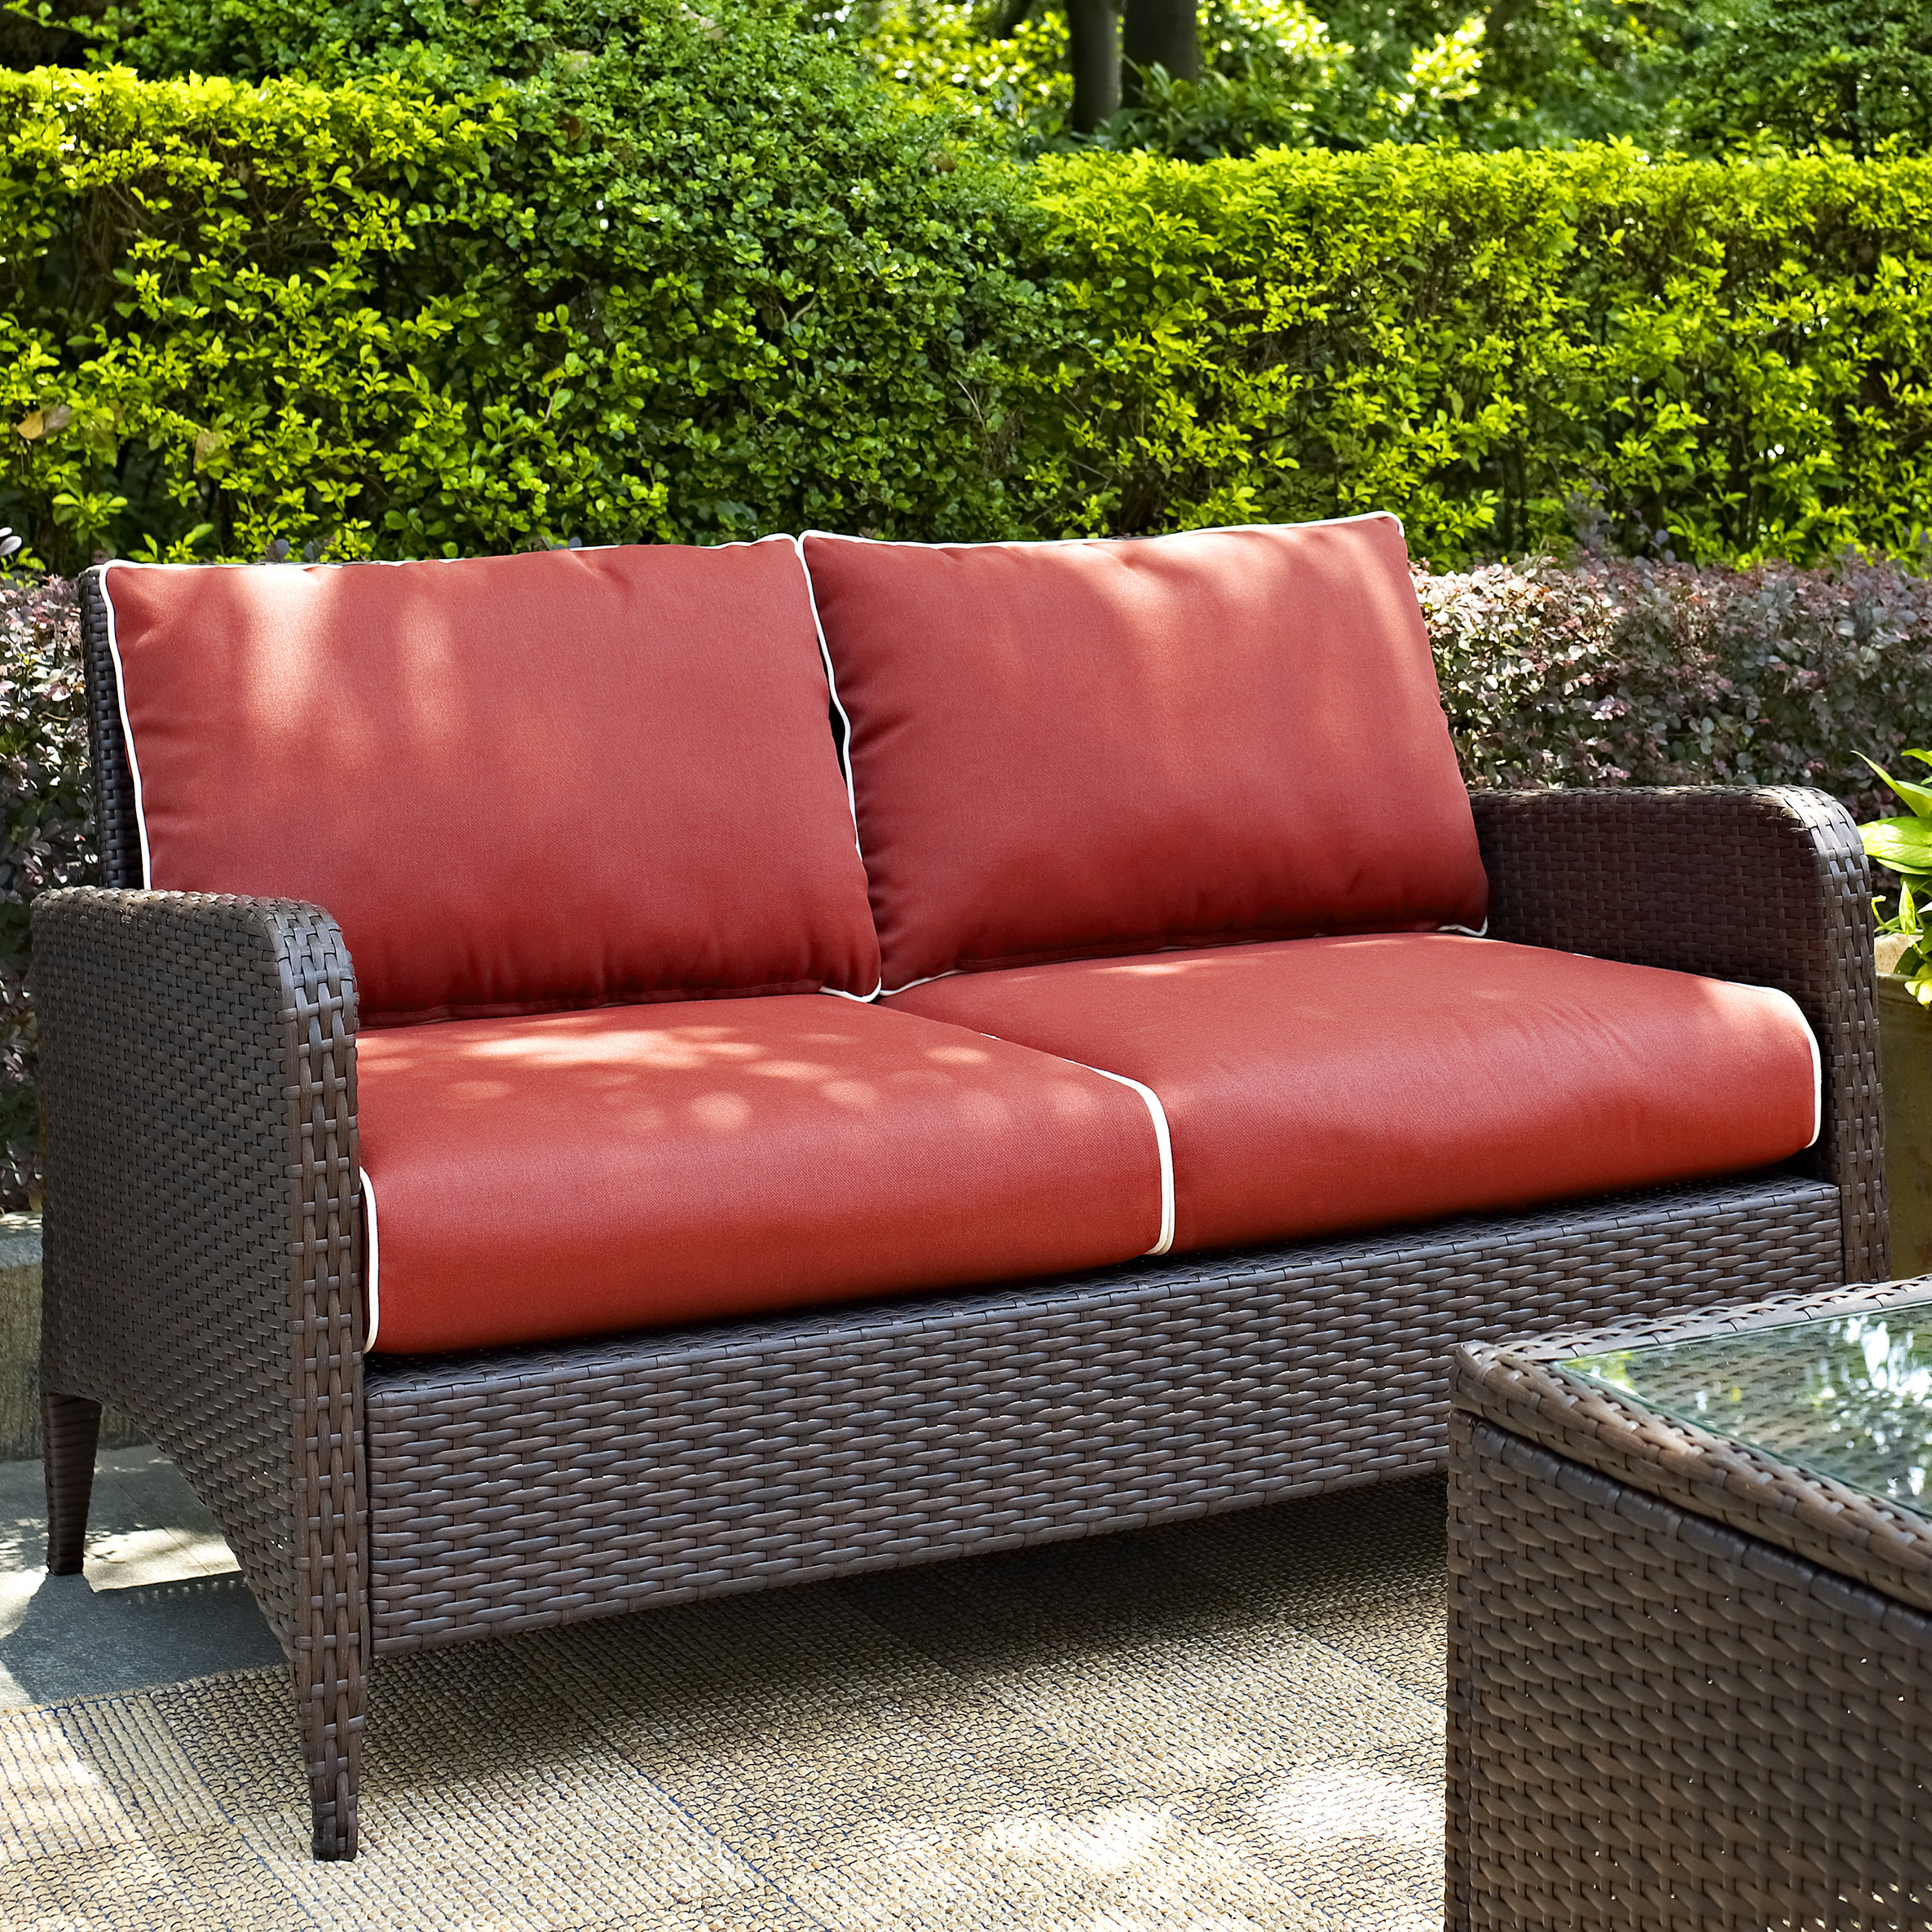 Mosca Patio Loveseat With Cushions Within Latest Camak Patio Loveseats With Cushions (View 13 of 20)